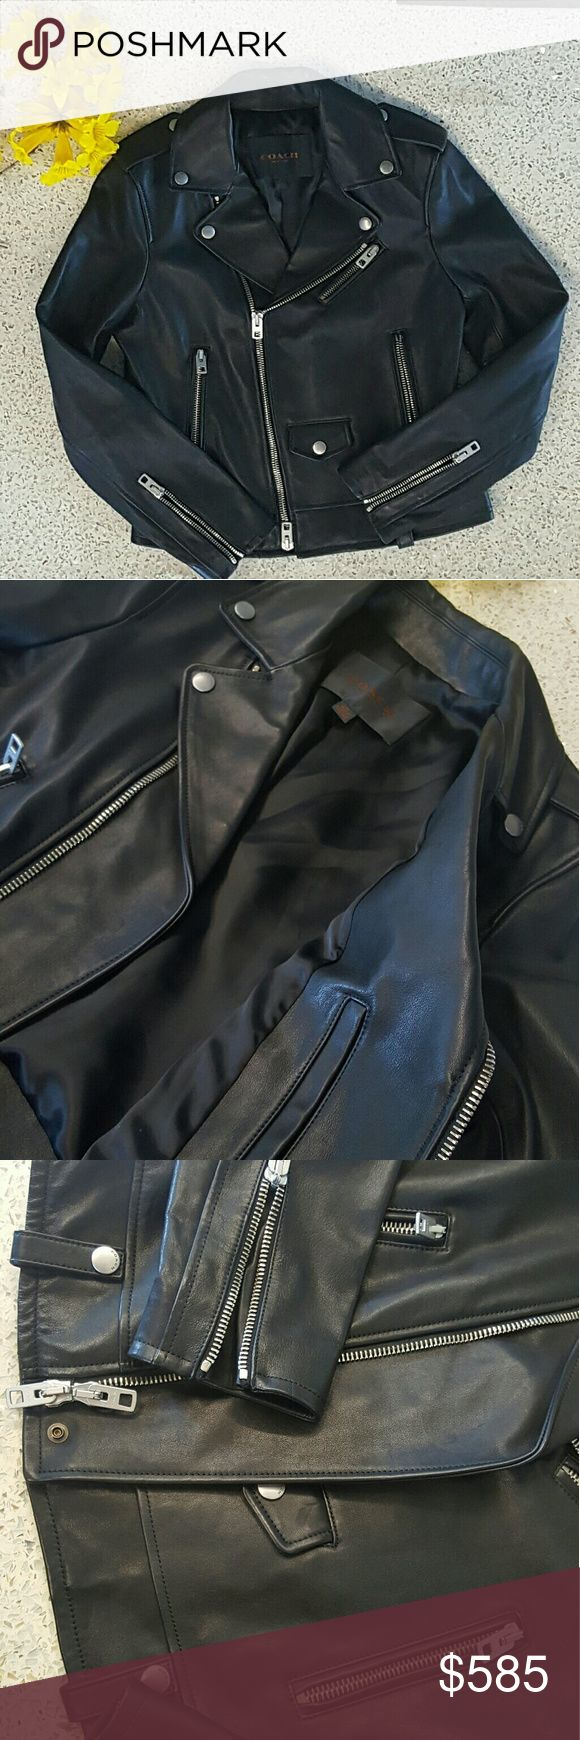 Coach Leather Rockstar Jacket Brand new!  Size 06, Medium  Genuine leather, silk interior, detailed with silver zippers No trades.  Kevin Hart's wife's jacket.  Reasonable offers accepted. Coach Jackets & Coats